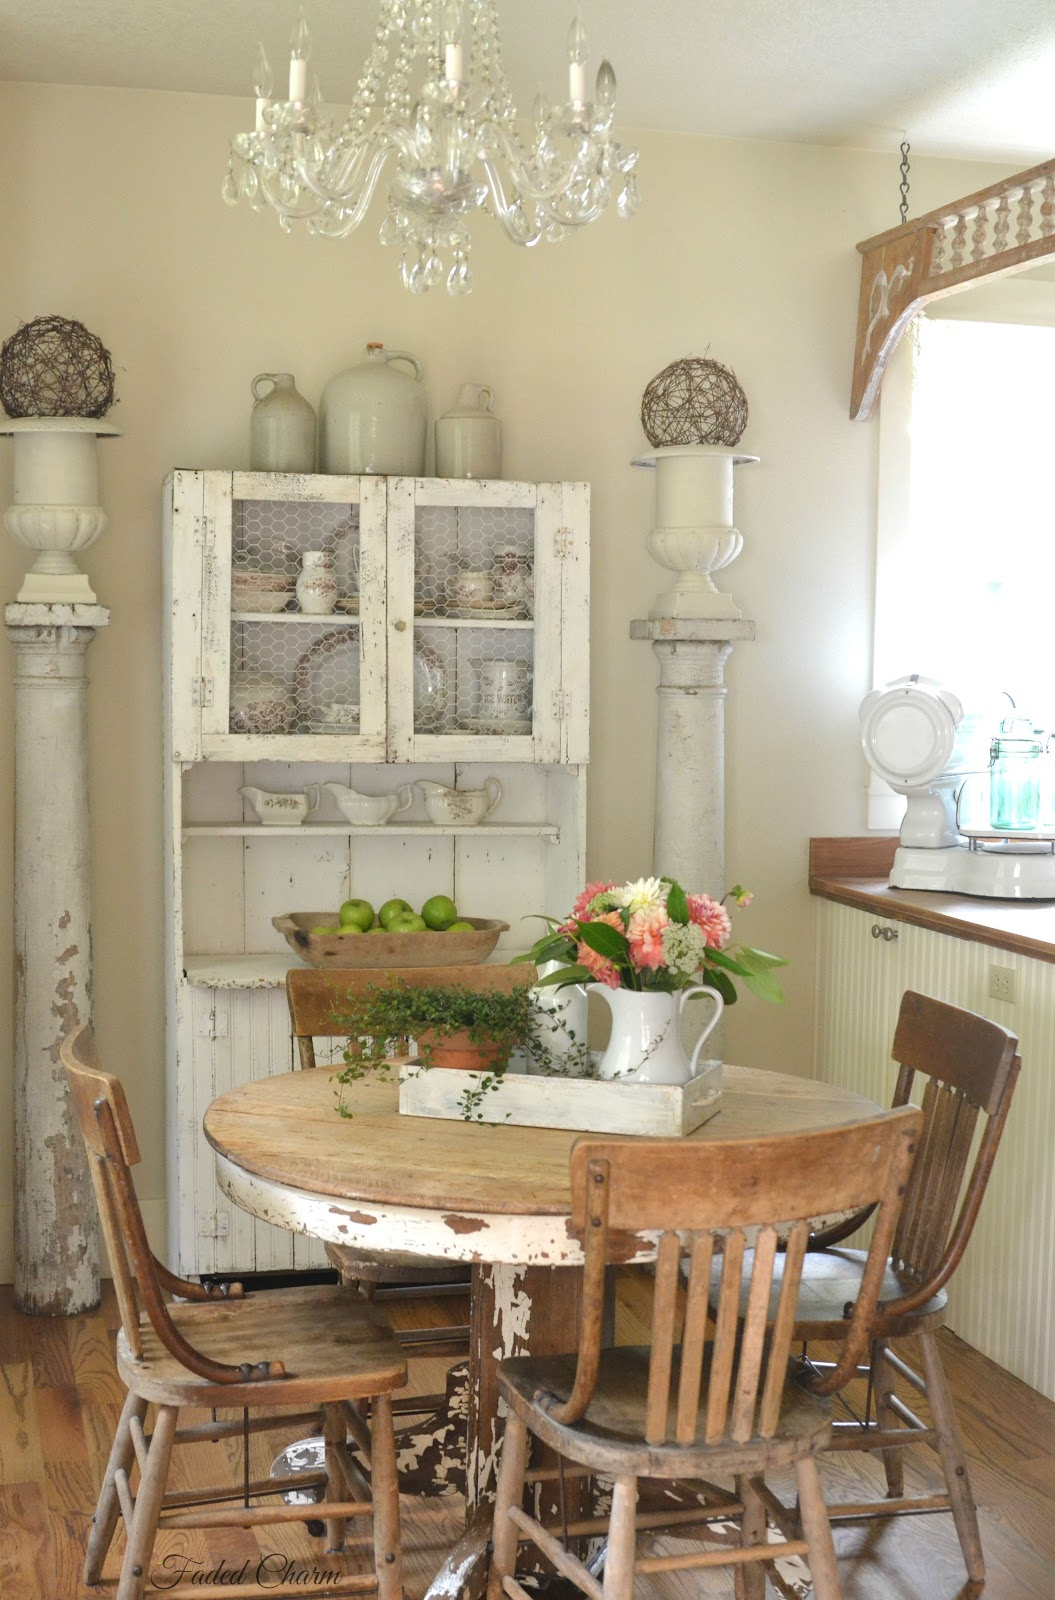 farmhouse fresh decor shabby charm dining country chic cottage decorating table room living faded rooms early fall romantique rustic diy